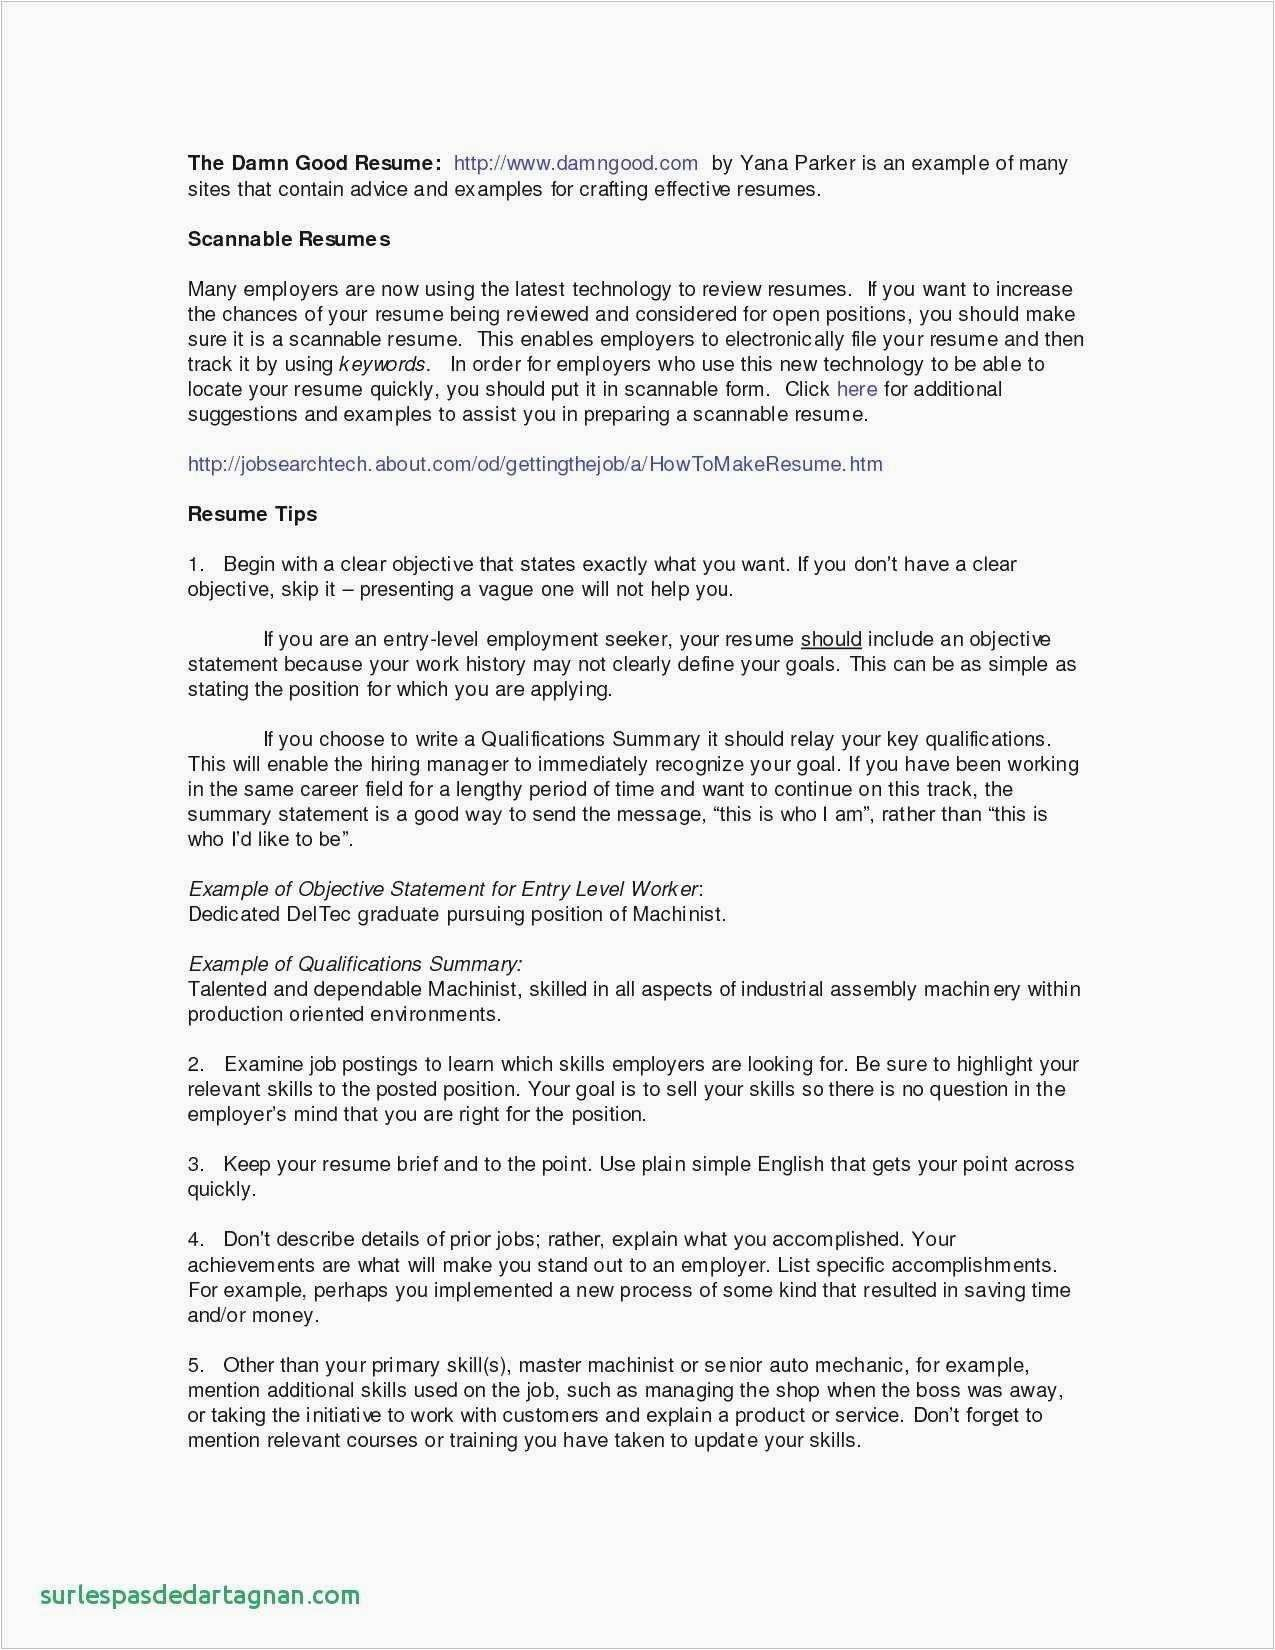 you can see this new advocacy letter format examples at nursing skills to include on resume trainee accountant cv sample pdf law school